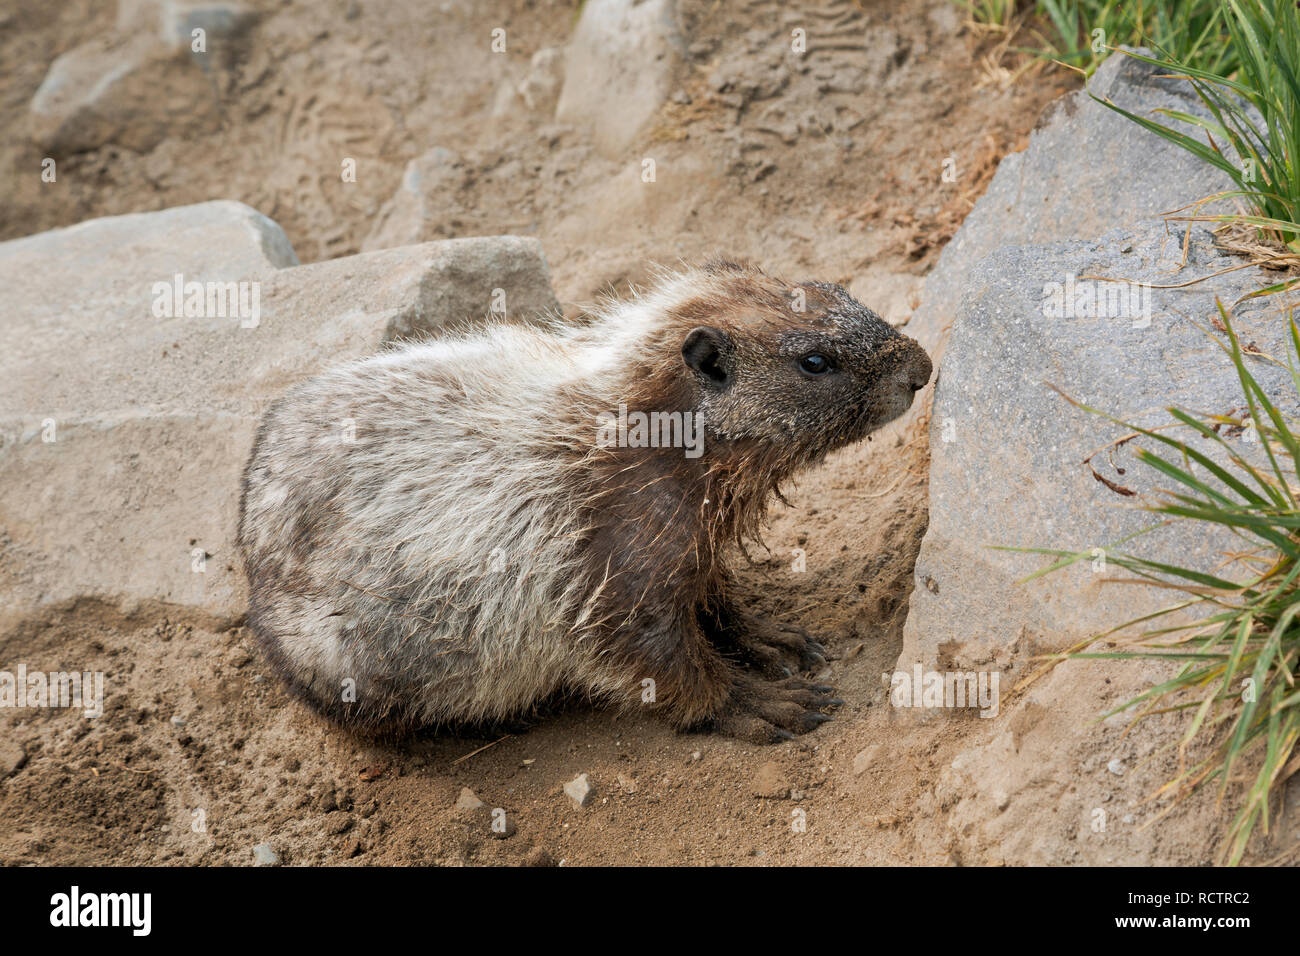 WA15768-00...WASHINGTON - A hoary marmot relaxing on the loose soil of the Golden Gate Trail in the Paradise area of Mount Rainier National Park. - Stock Image